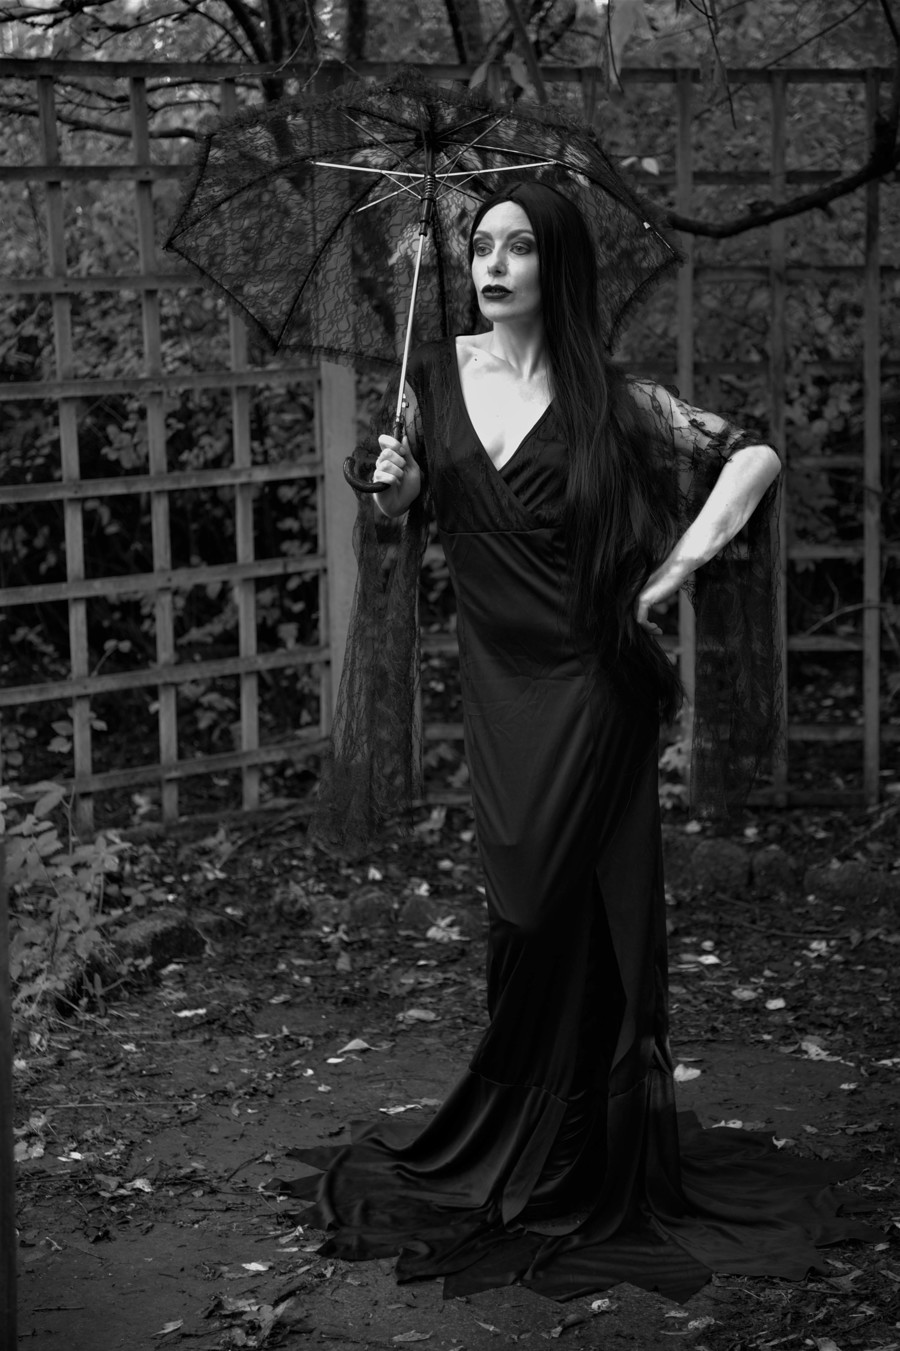 Morticia Addams / Photography by Alan9, Model Aurora Violet, Makeup by Aurora Violet / Uploaded 27th October 2020 @ 07:37 PM